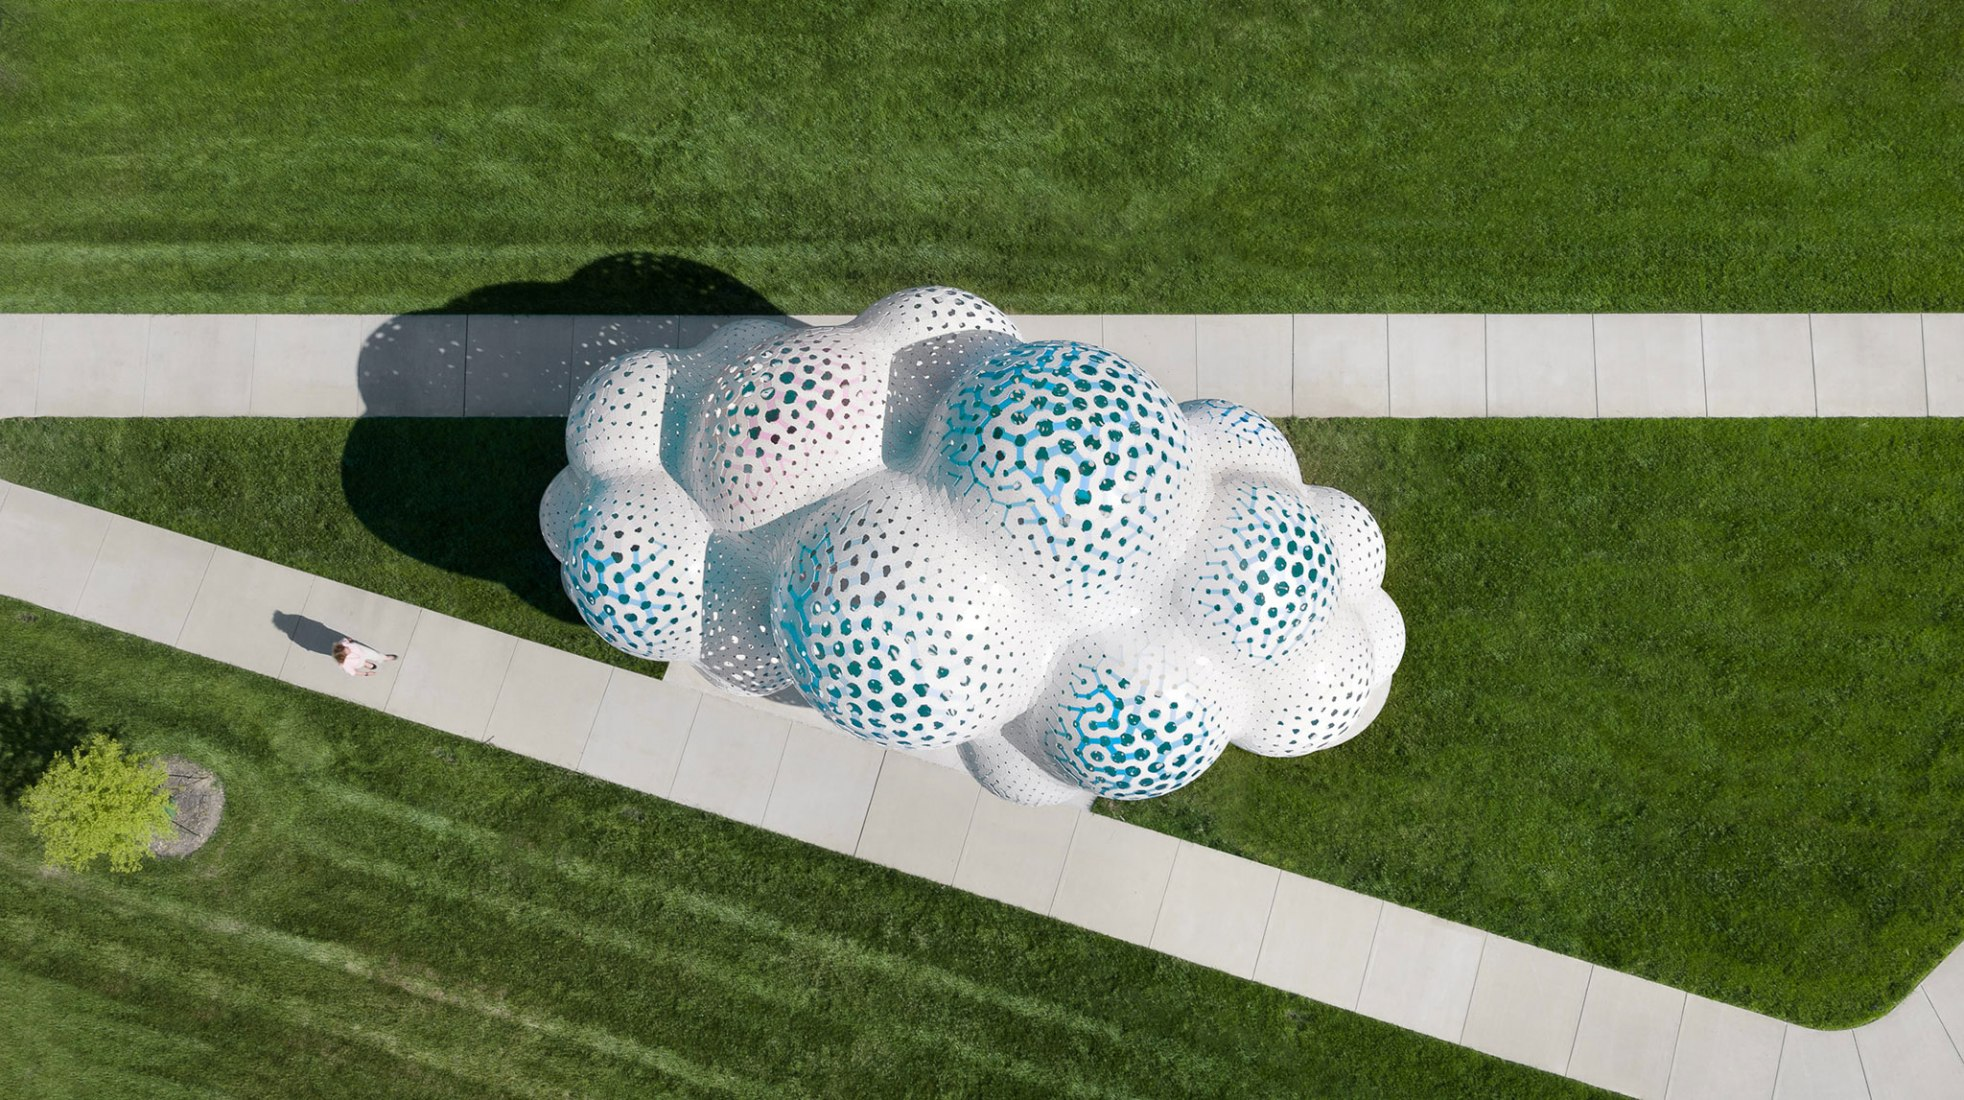 Pillars of Dreams by Marc Fornes / Theverymany. Photograph by NAARO.